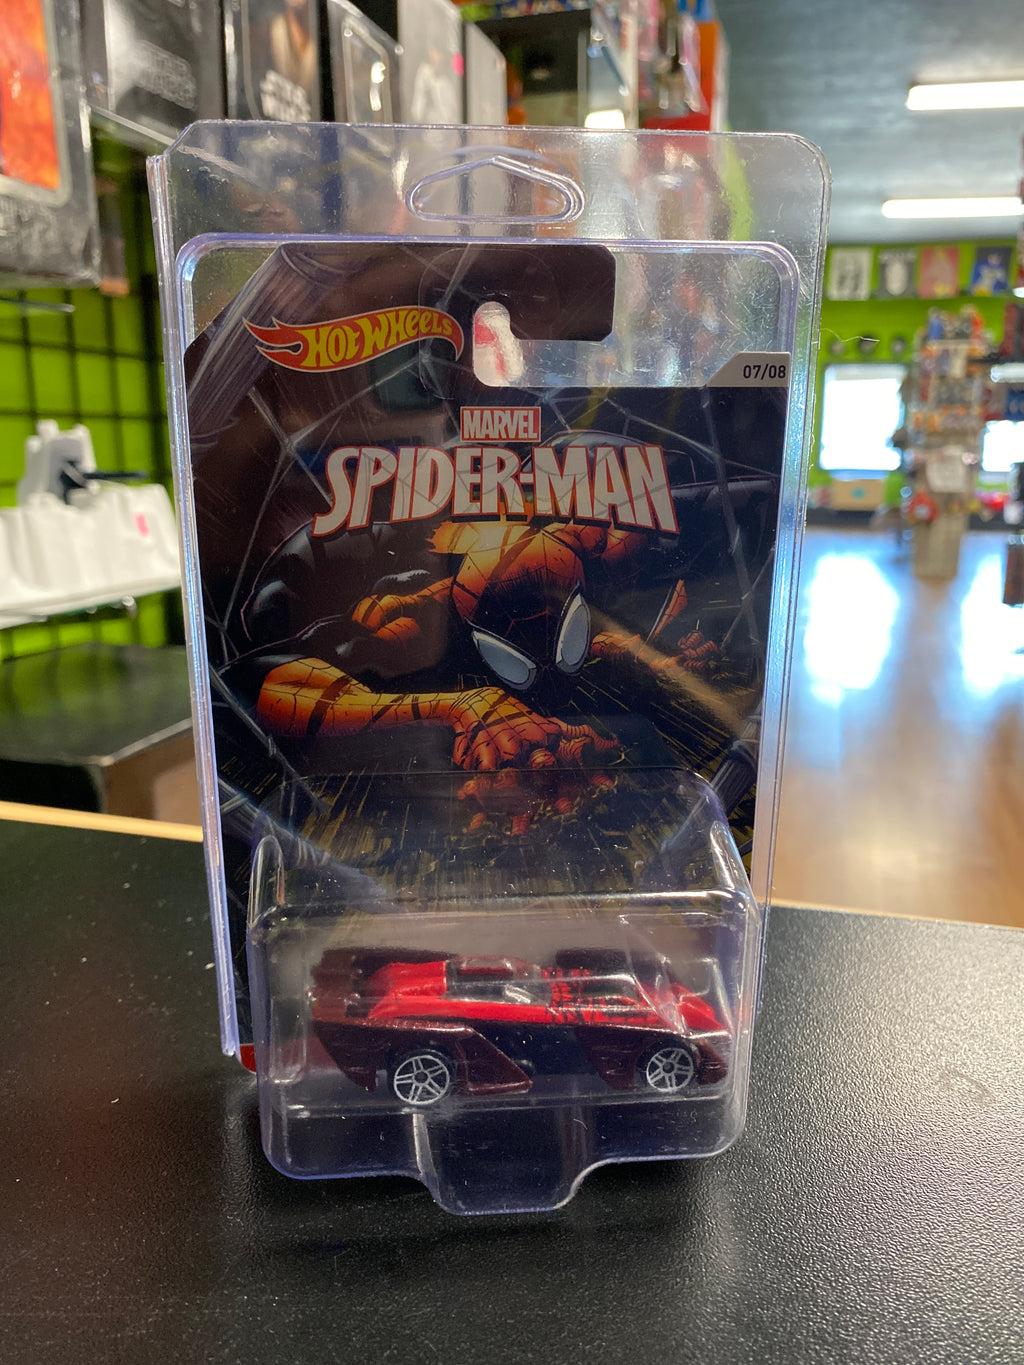 Mattel Hot Wheels Marvel Spider-Man Shredster